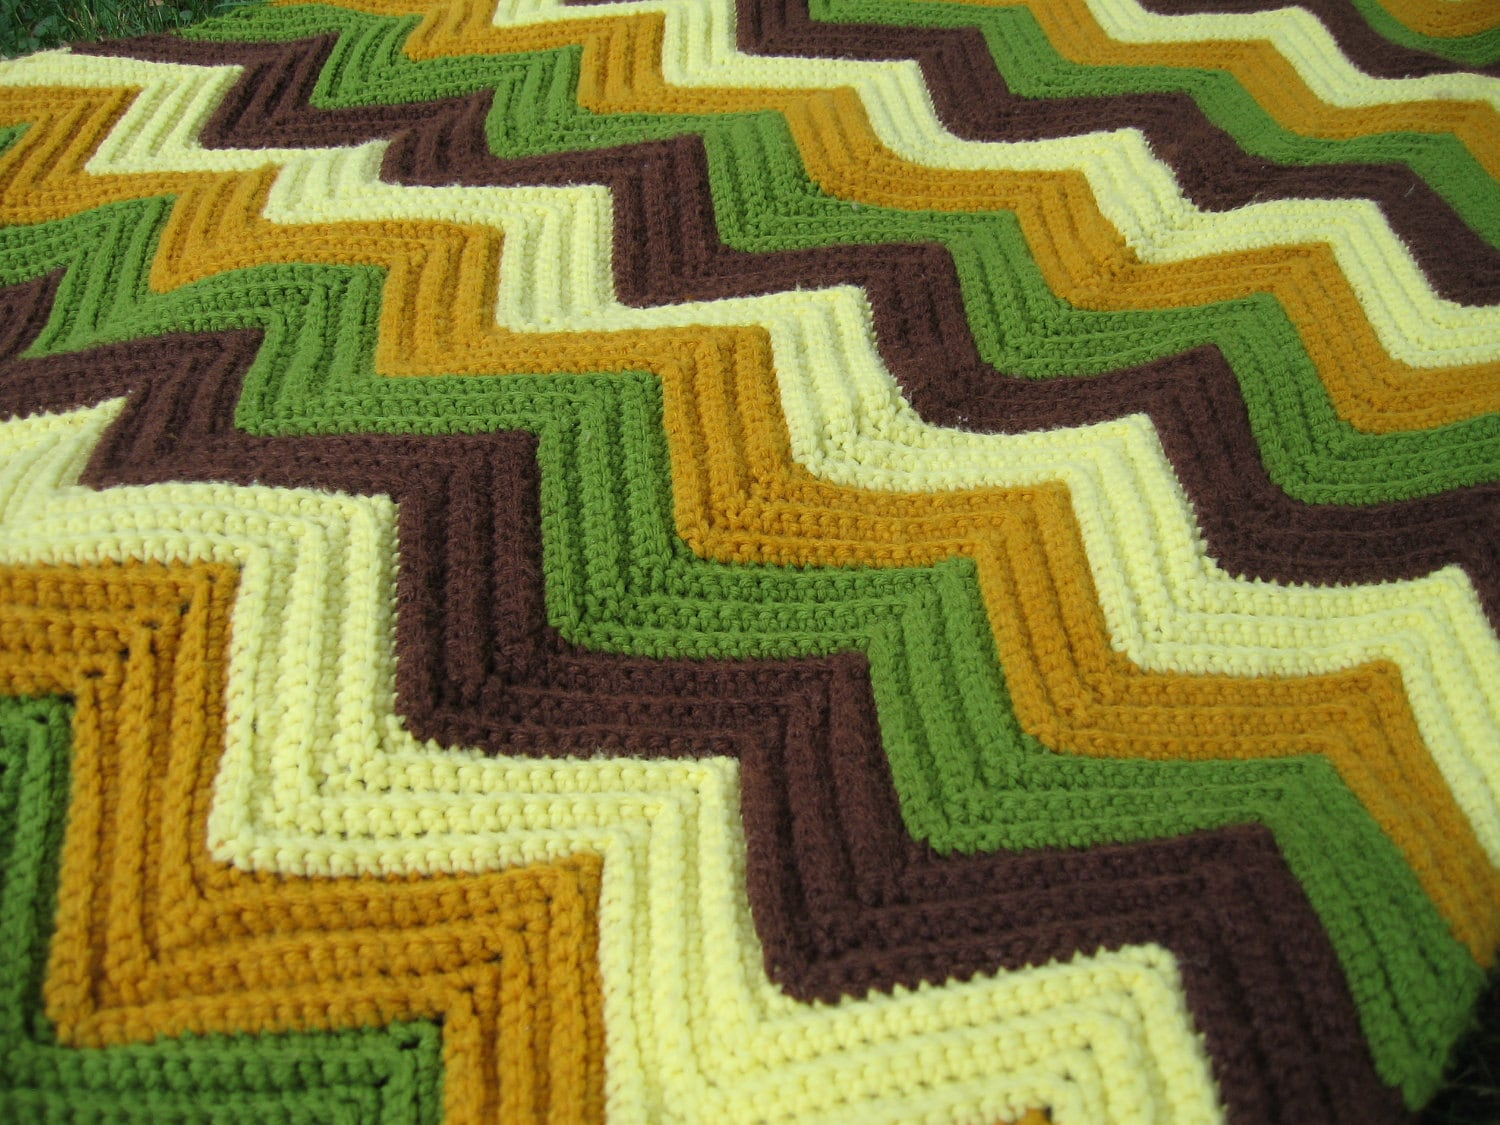 Crocheted Zig Zag Afghan | Free Crochet Patterns